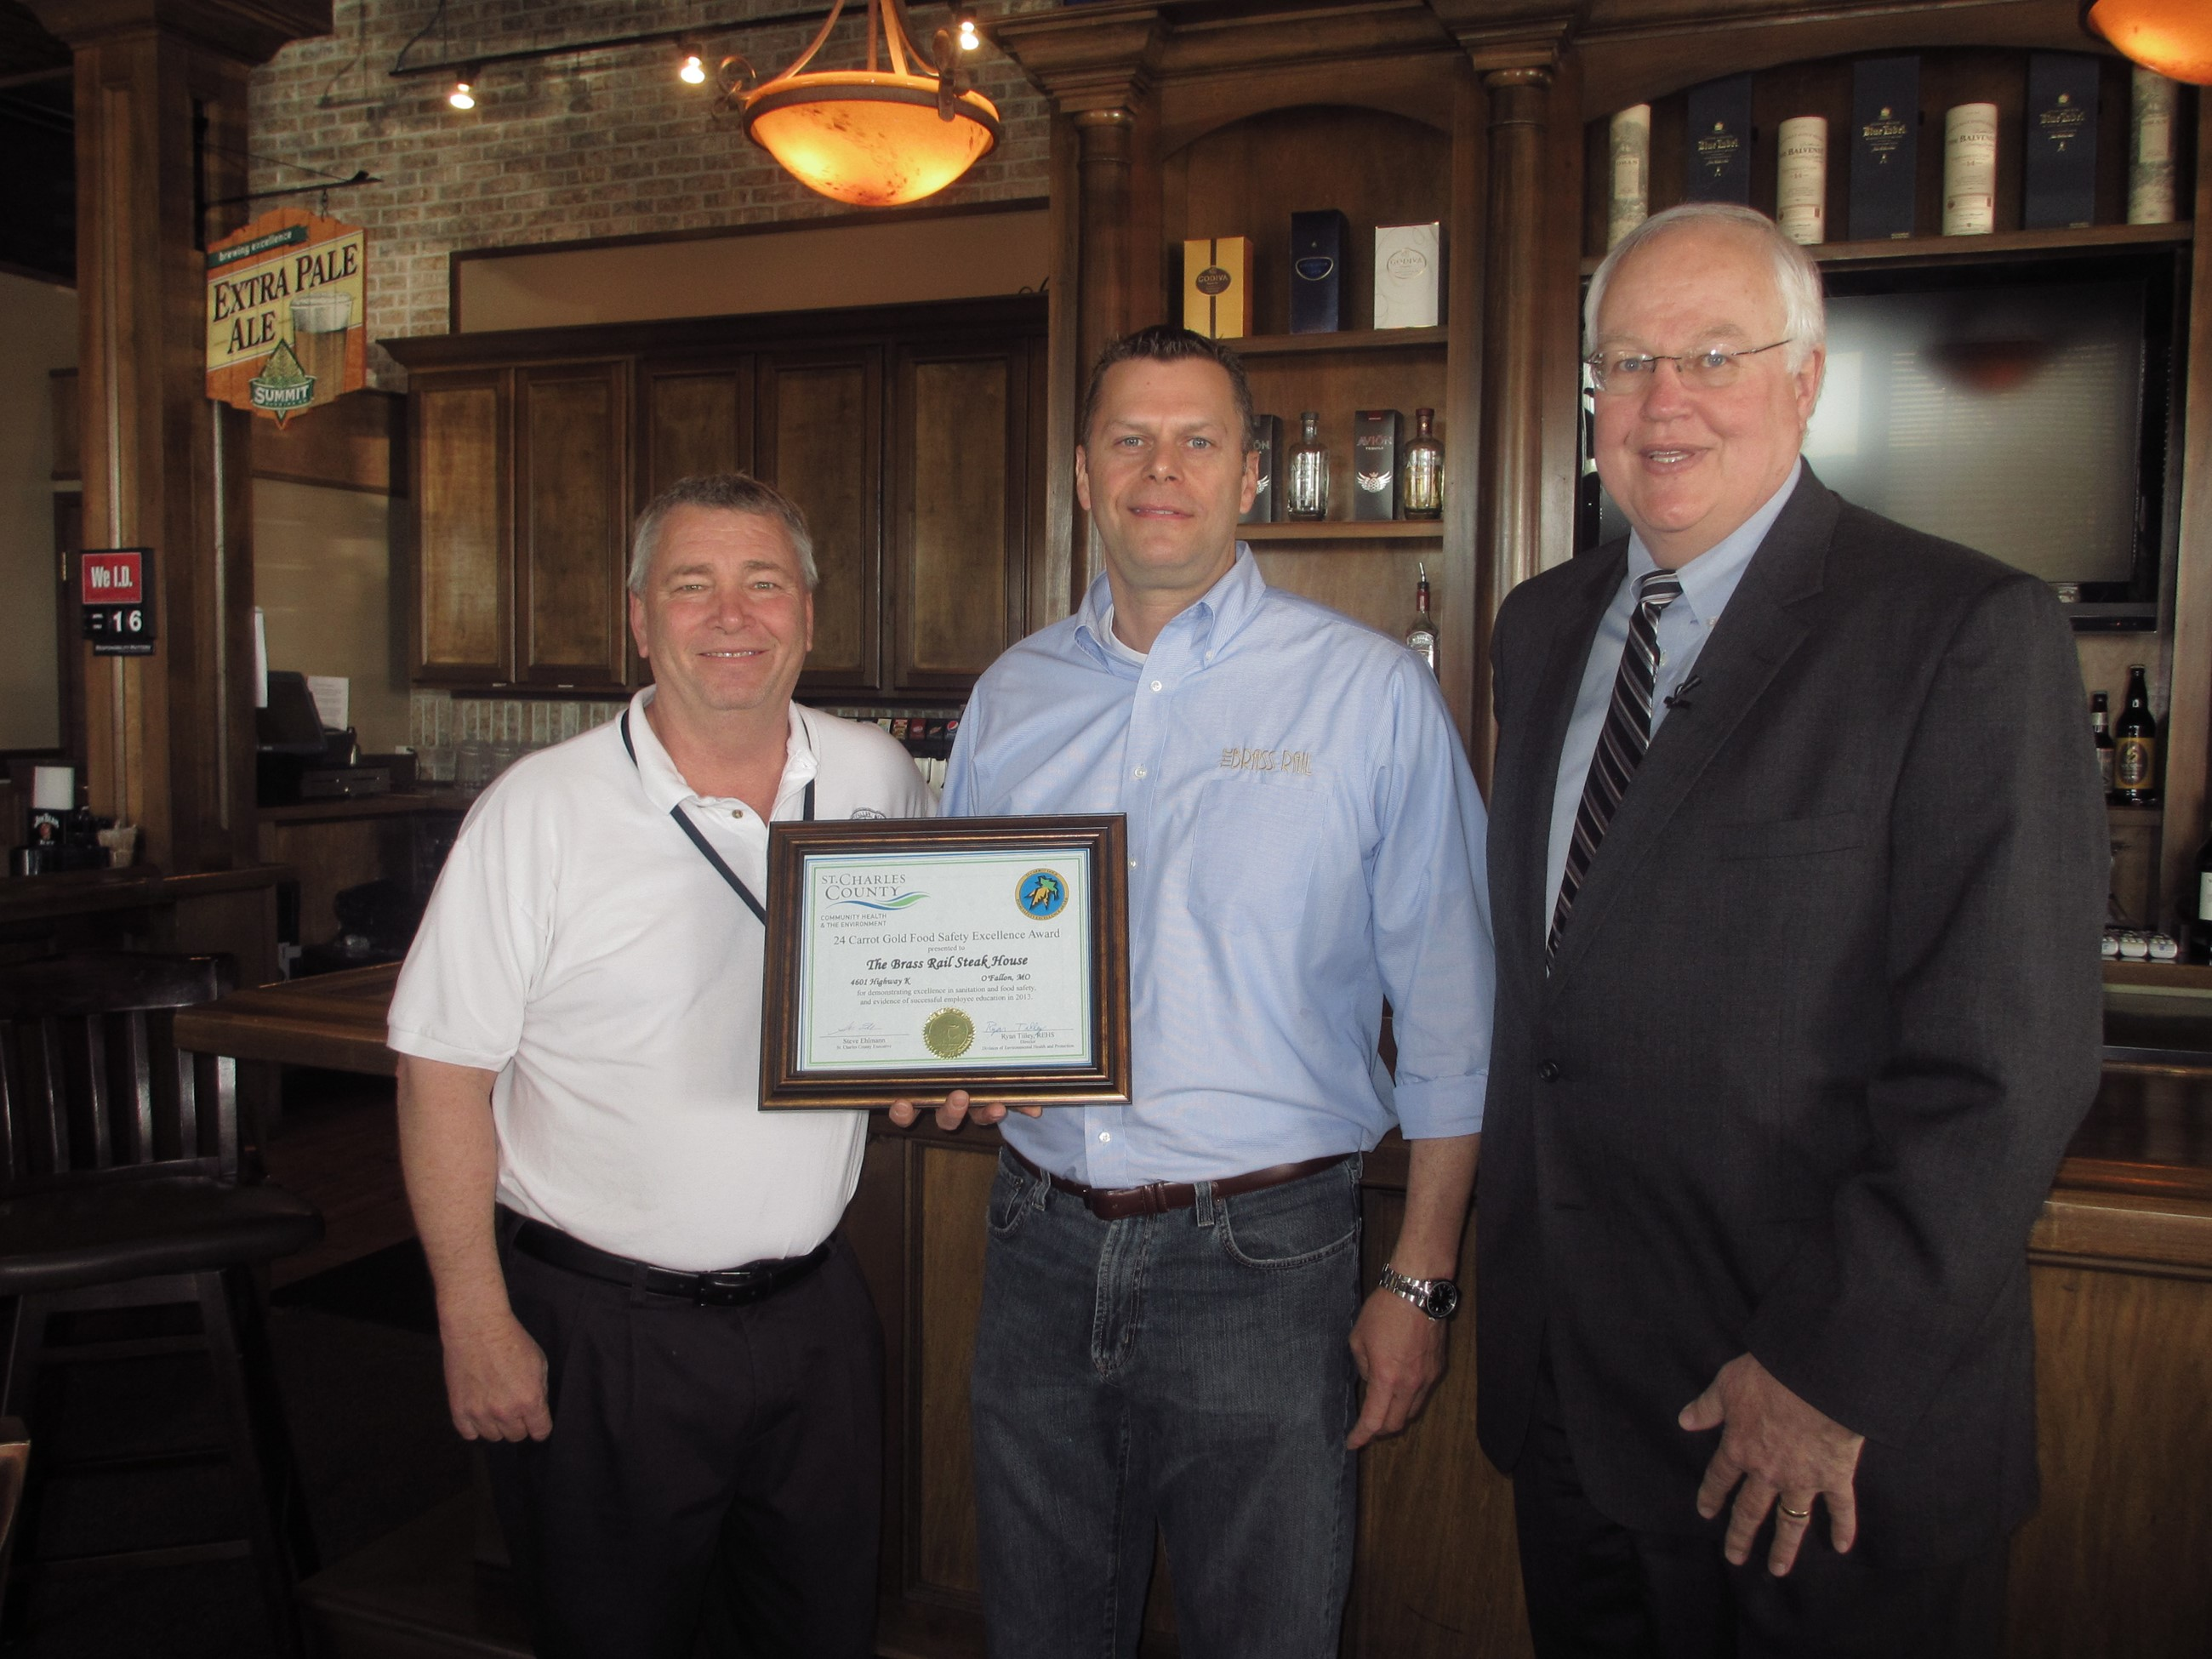 County Executive Ehlmann presents 24 Carrot Food Safety award to The Brass Rail ownership